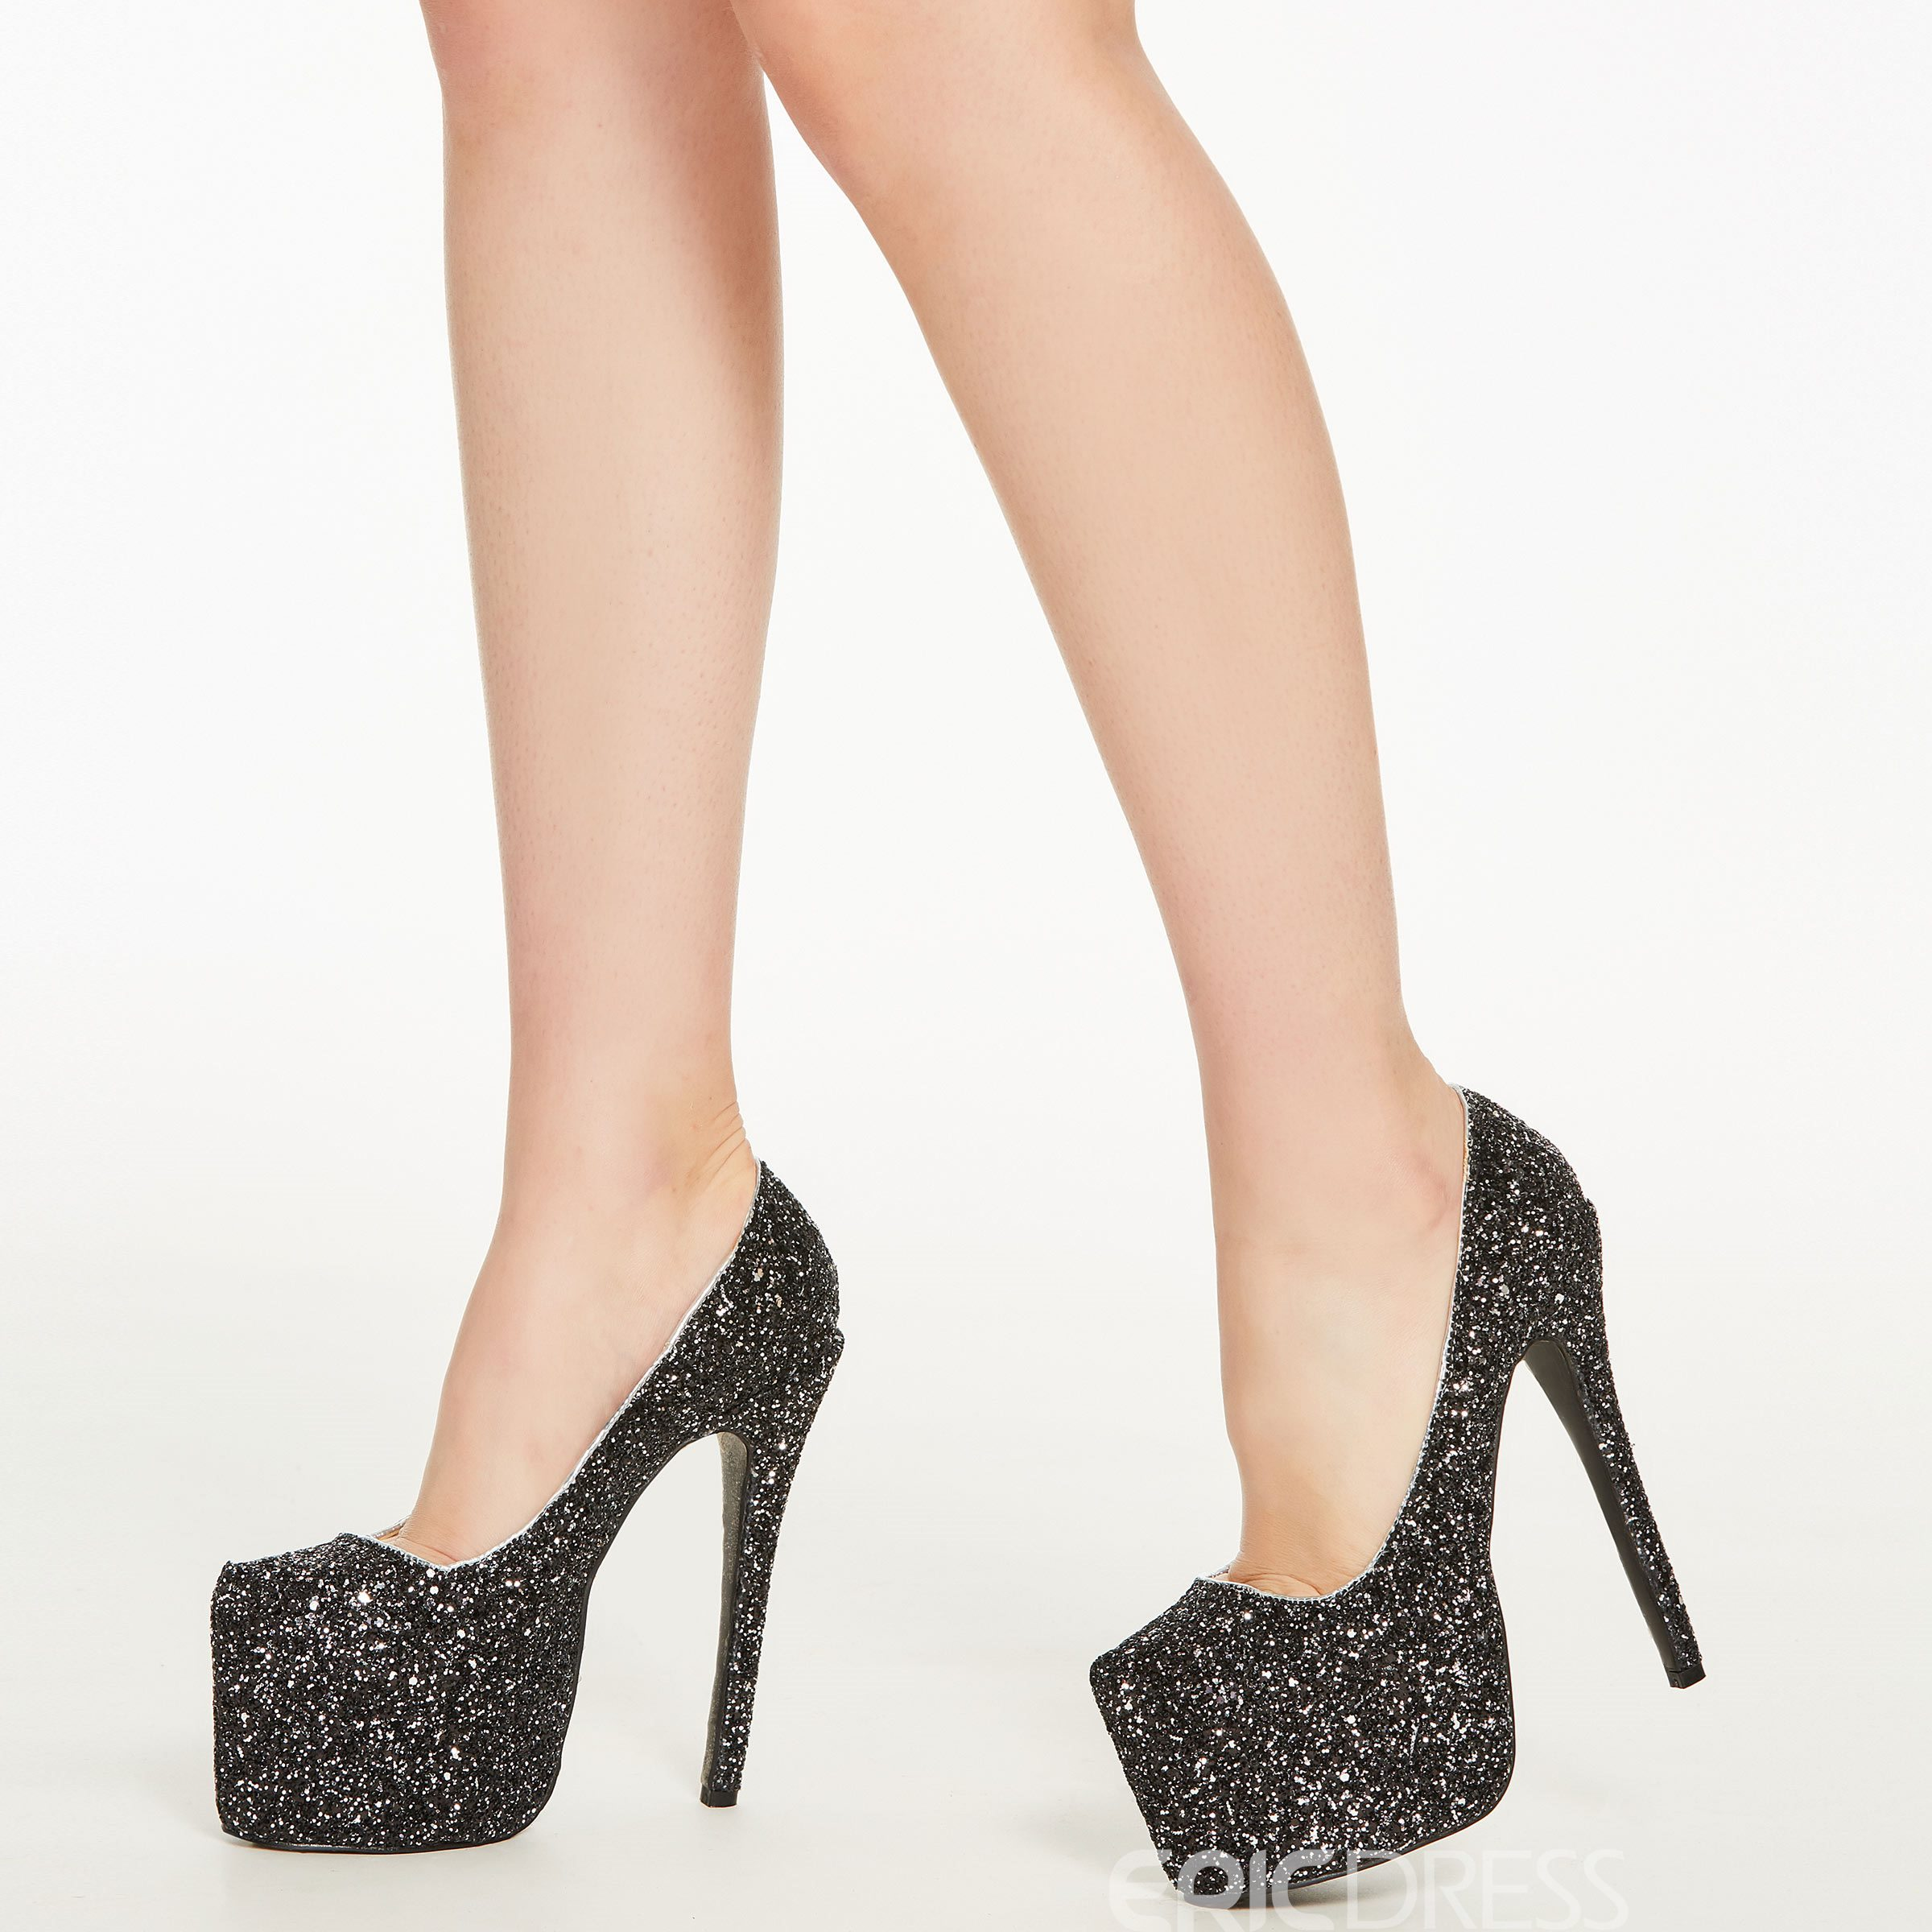 Amazing Rhinestone Coppy Leather Platform High Heel Shoes